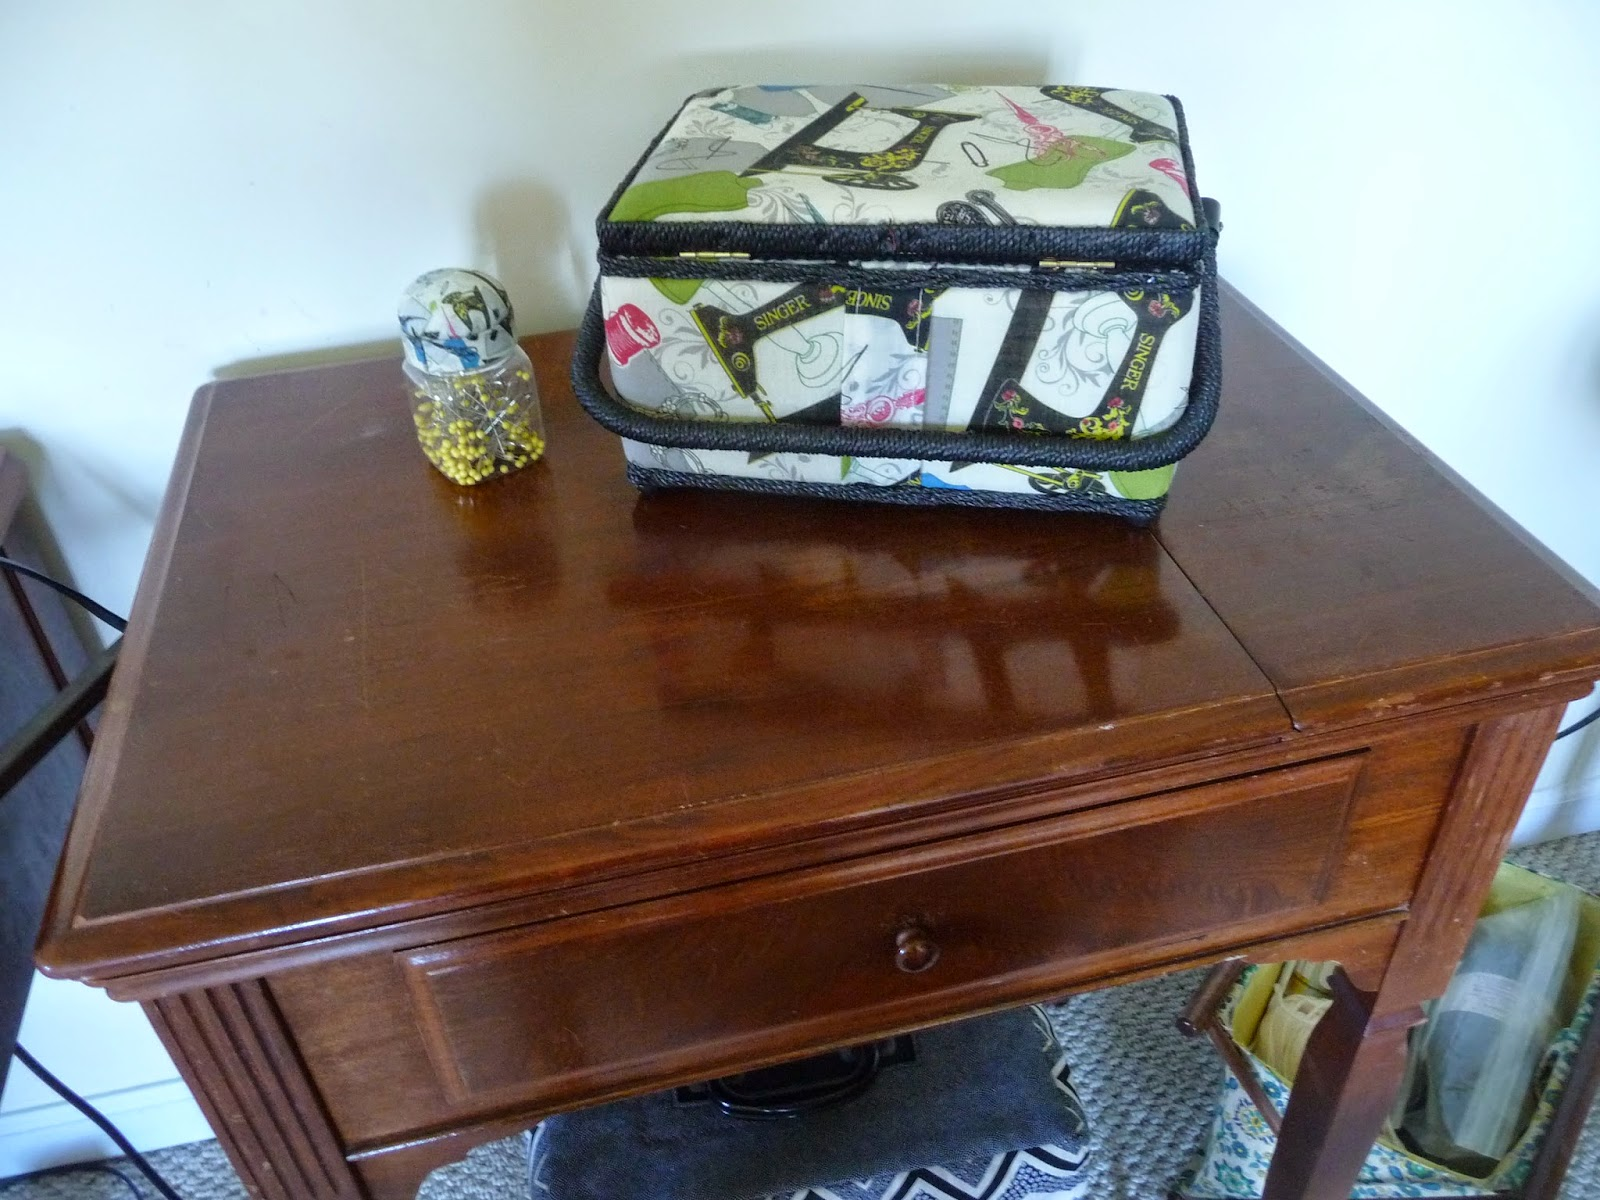 Running Stitches: Singer Cabinet for 301 - I Found One!